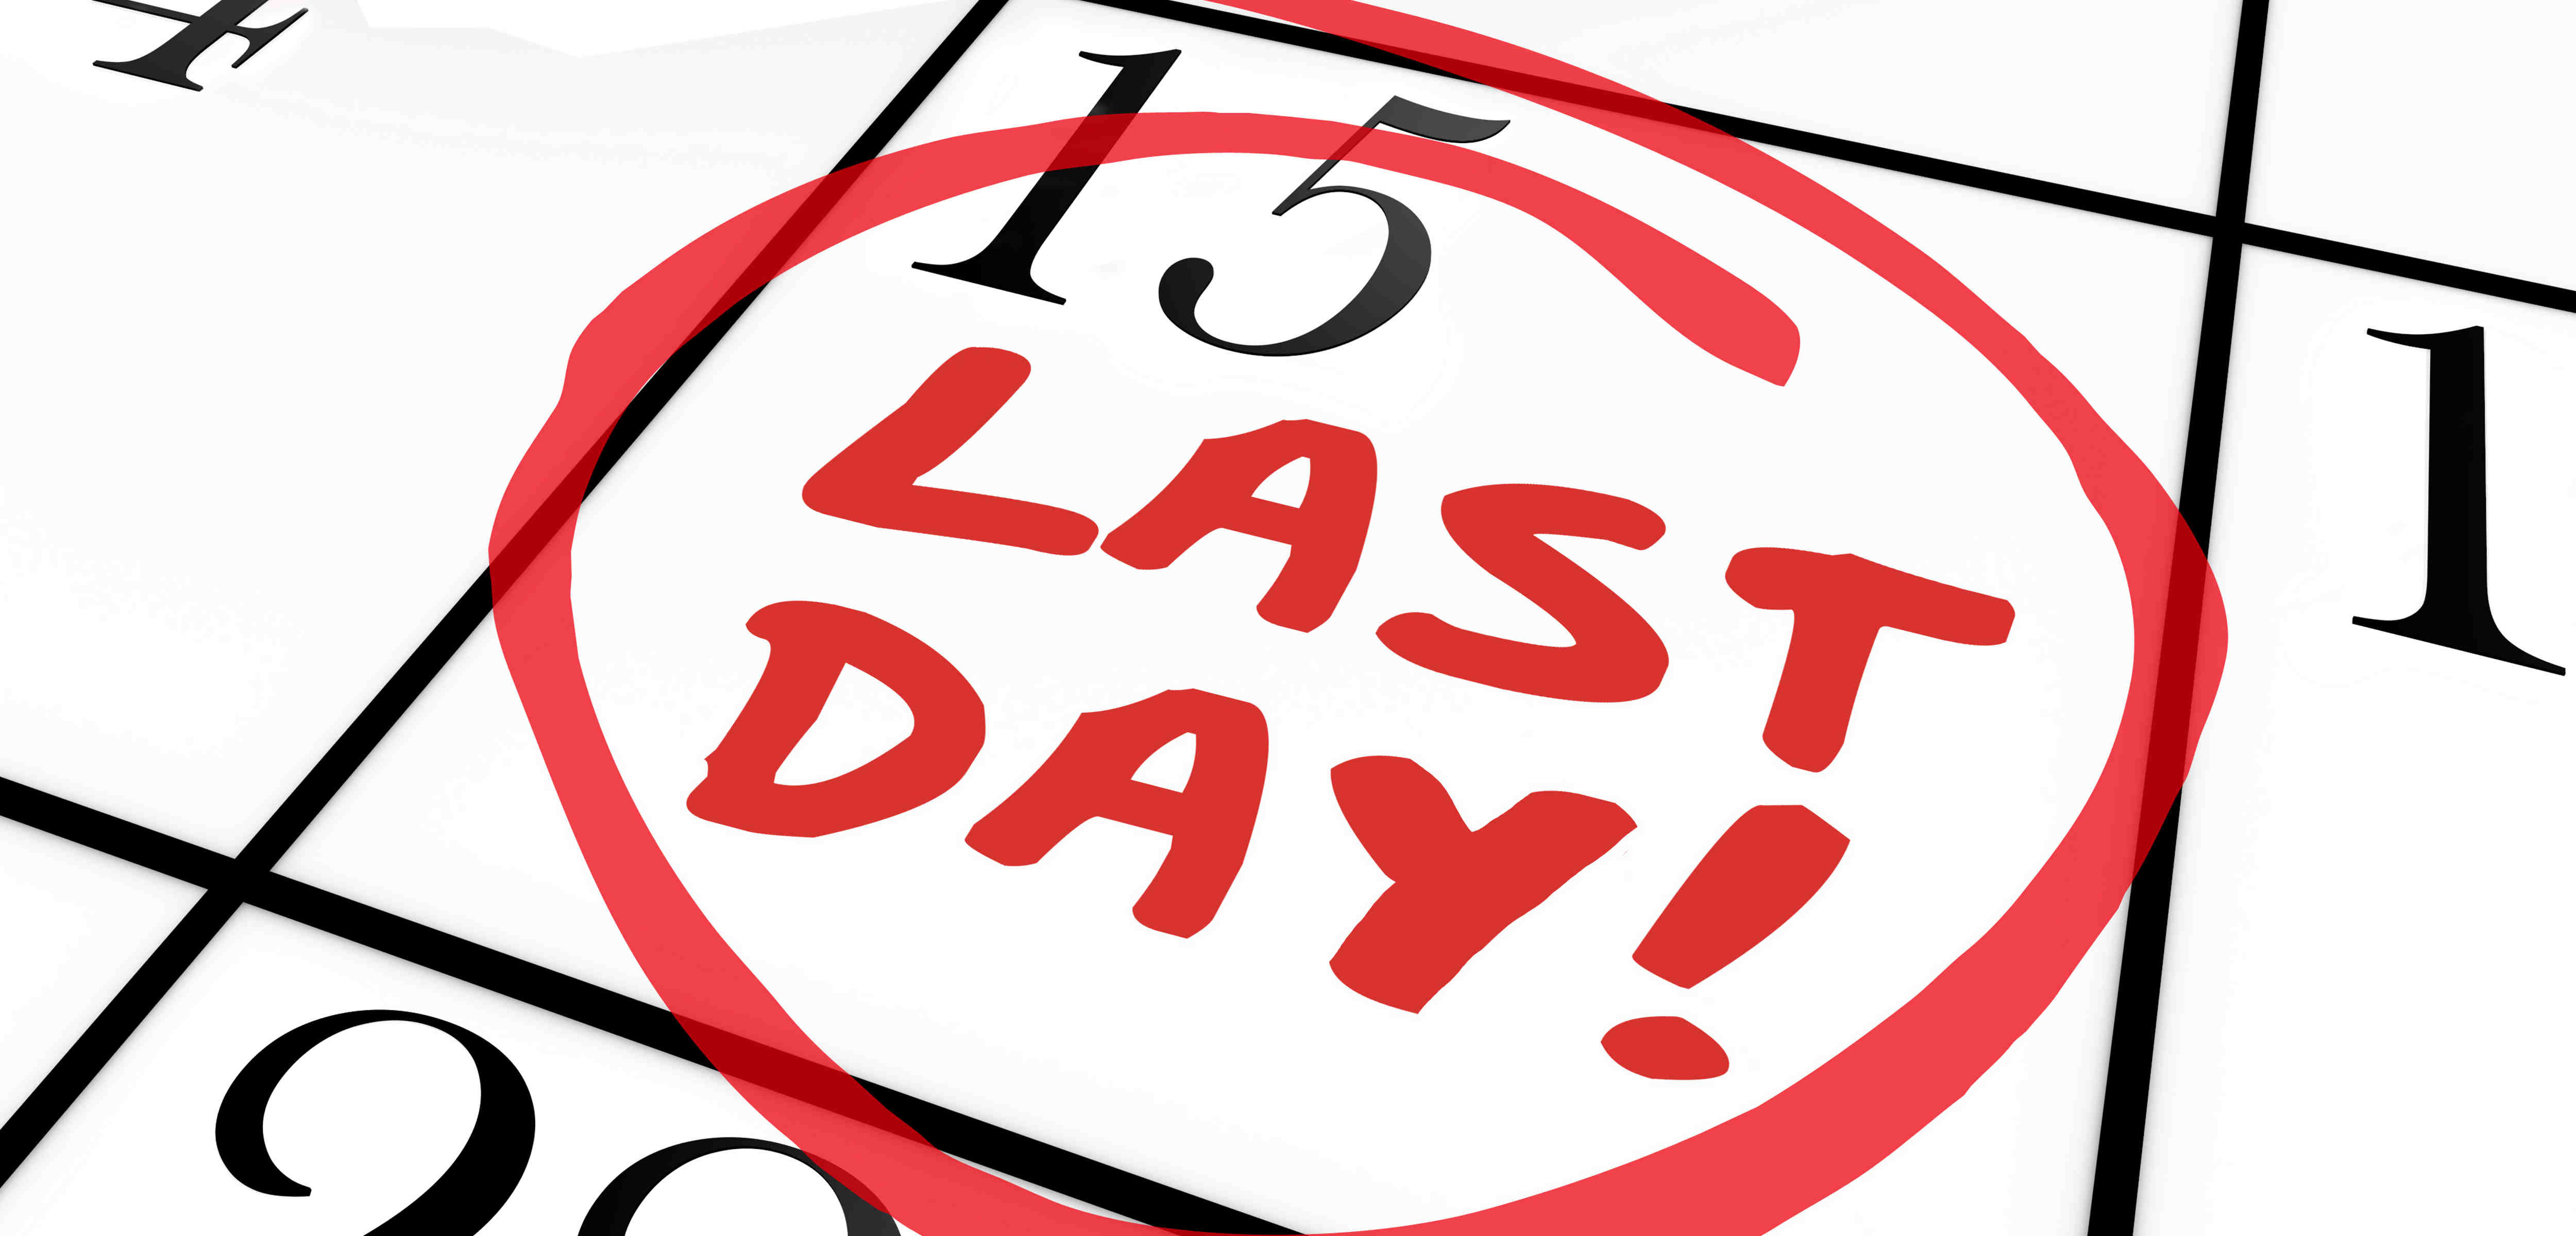 Last Day words written in red marker ink on a calendar date and circled as a reminder of the deadline, due period or expiration